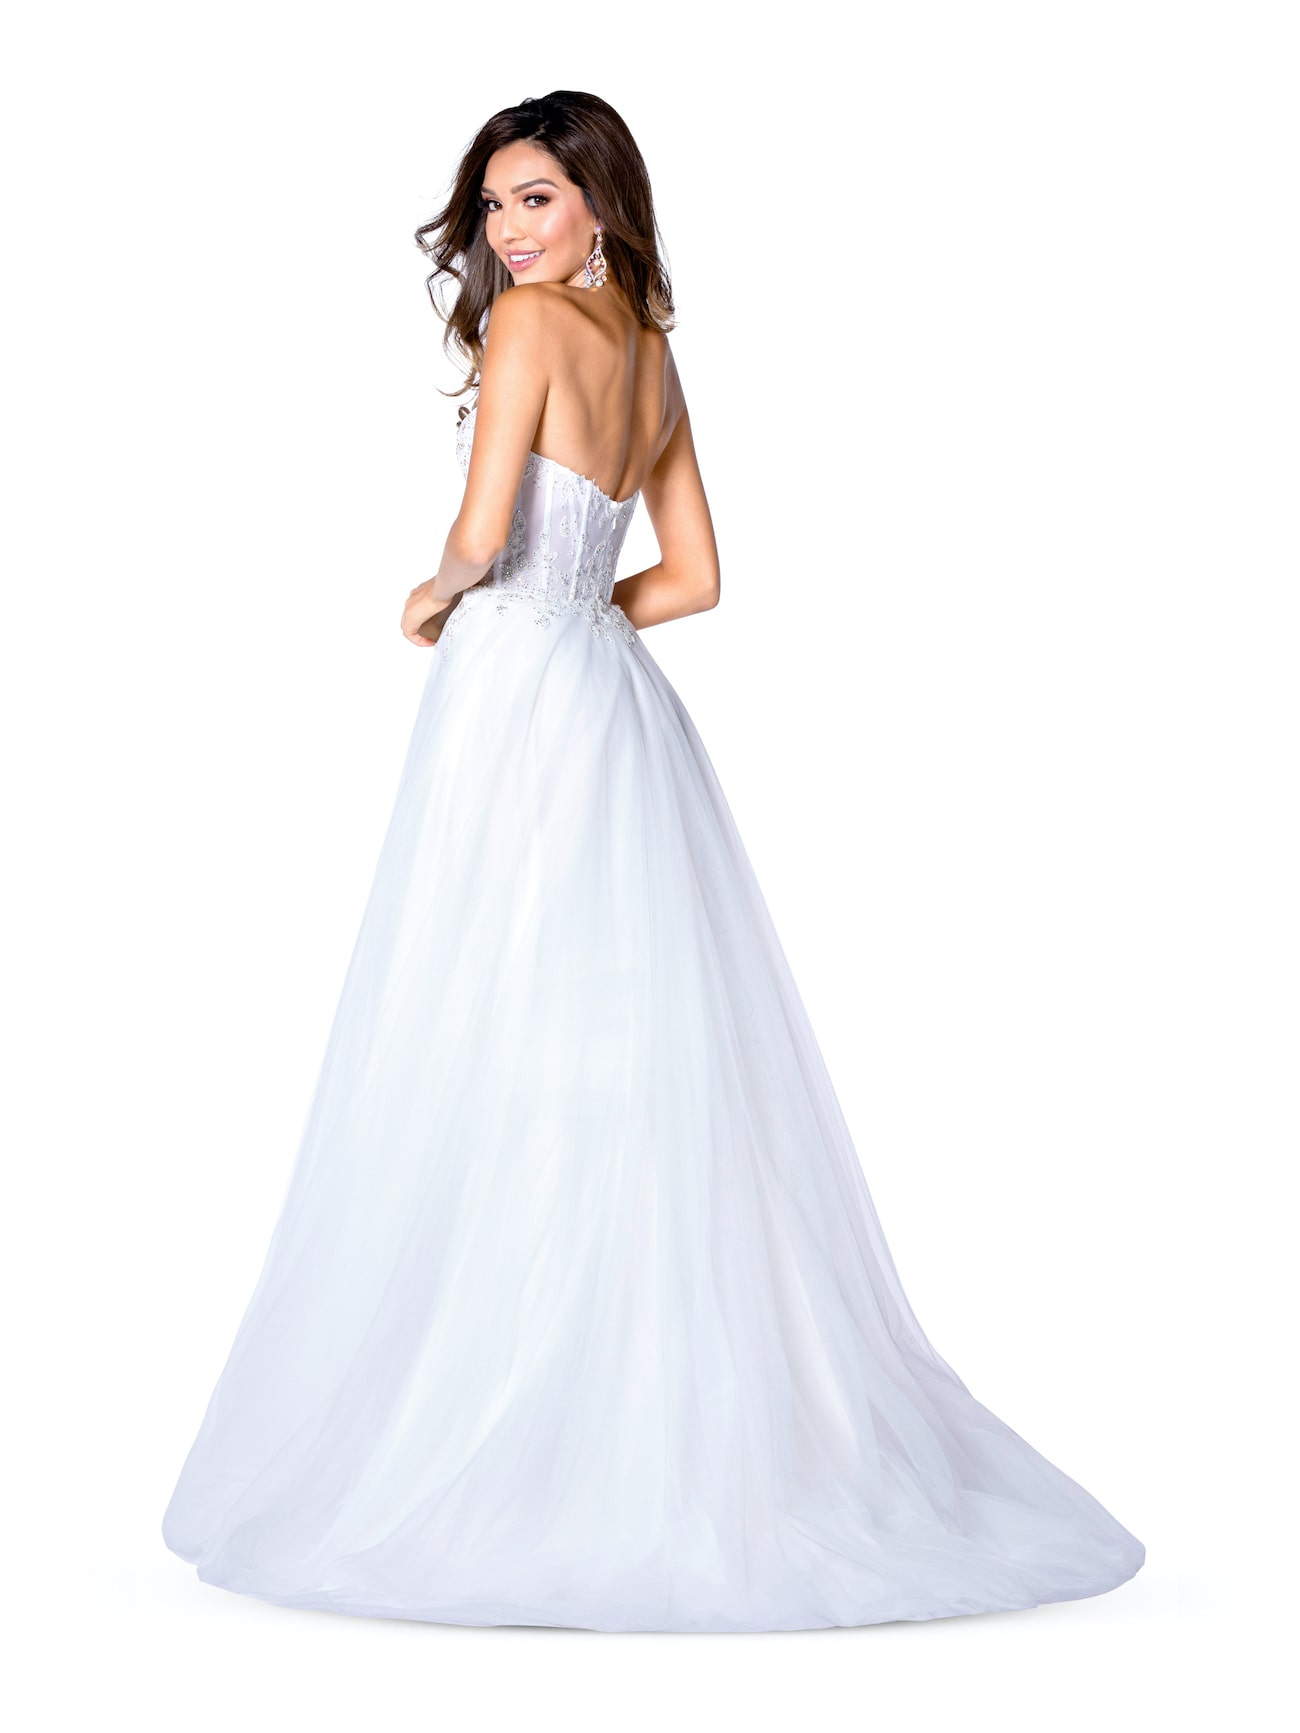 Vienna White Size 8 Wedding Backless A-line Dress on Queenly